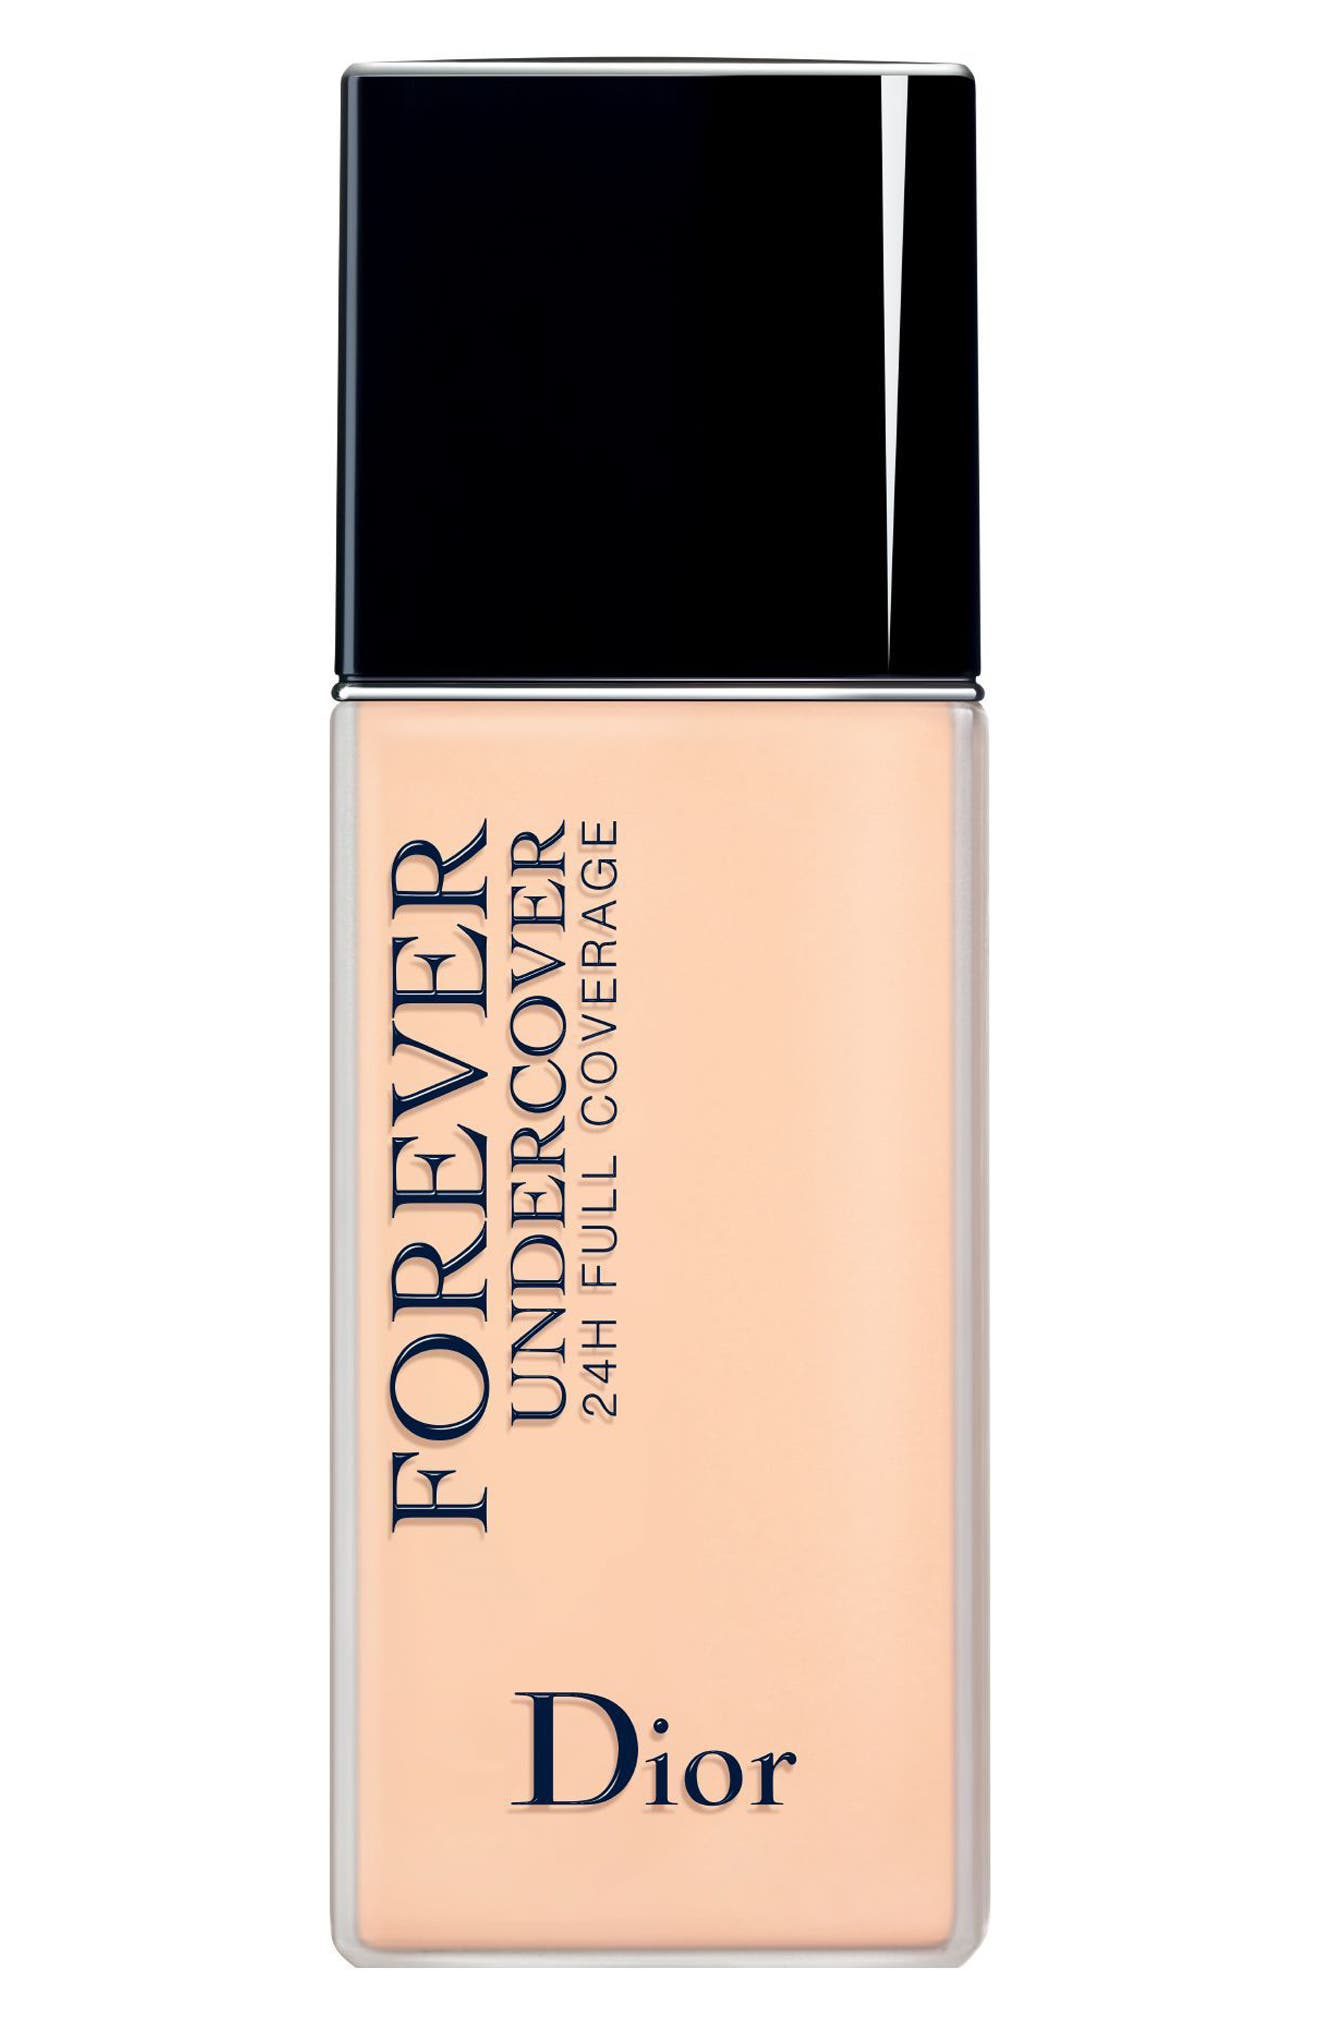 Dior Diorskin Forever Undercover 24-Hour Full Coverage Water-Based Foundation - 015 Tender Beige